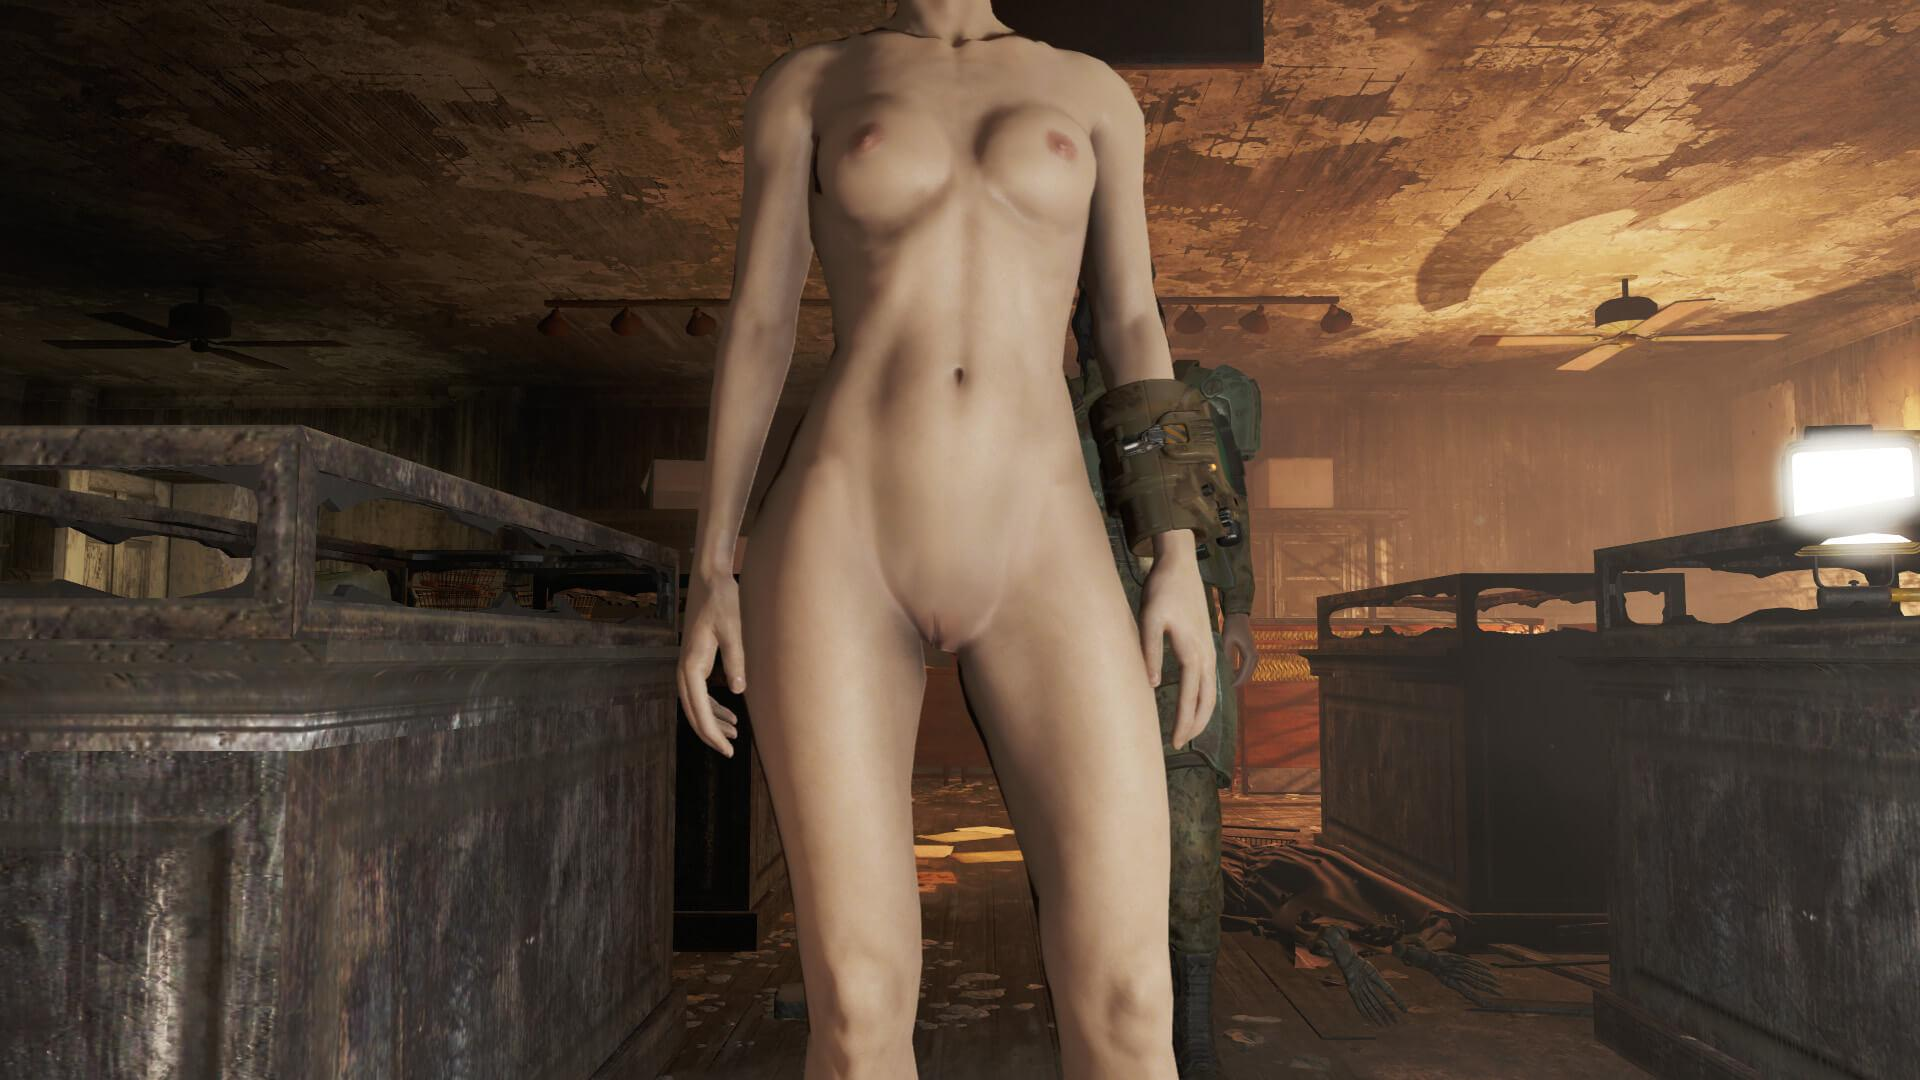 candy-celbrity-fallout-nude-body